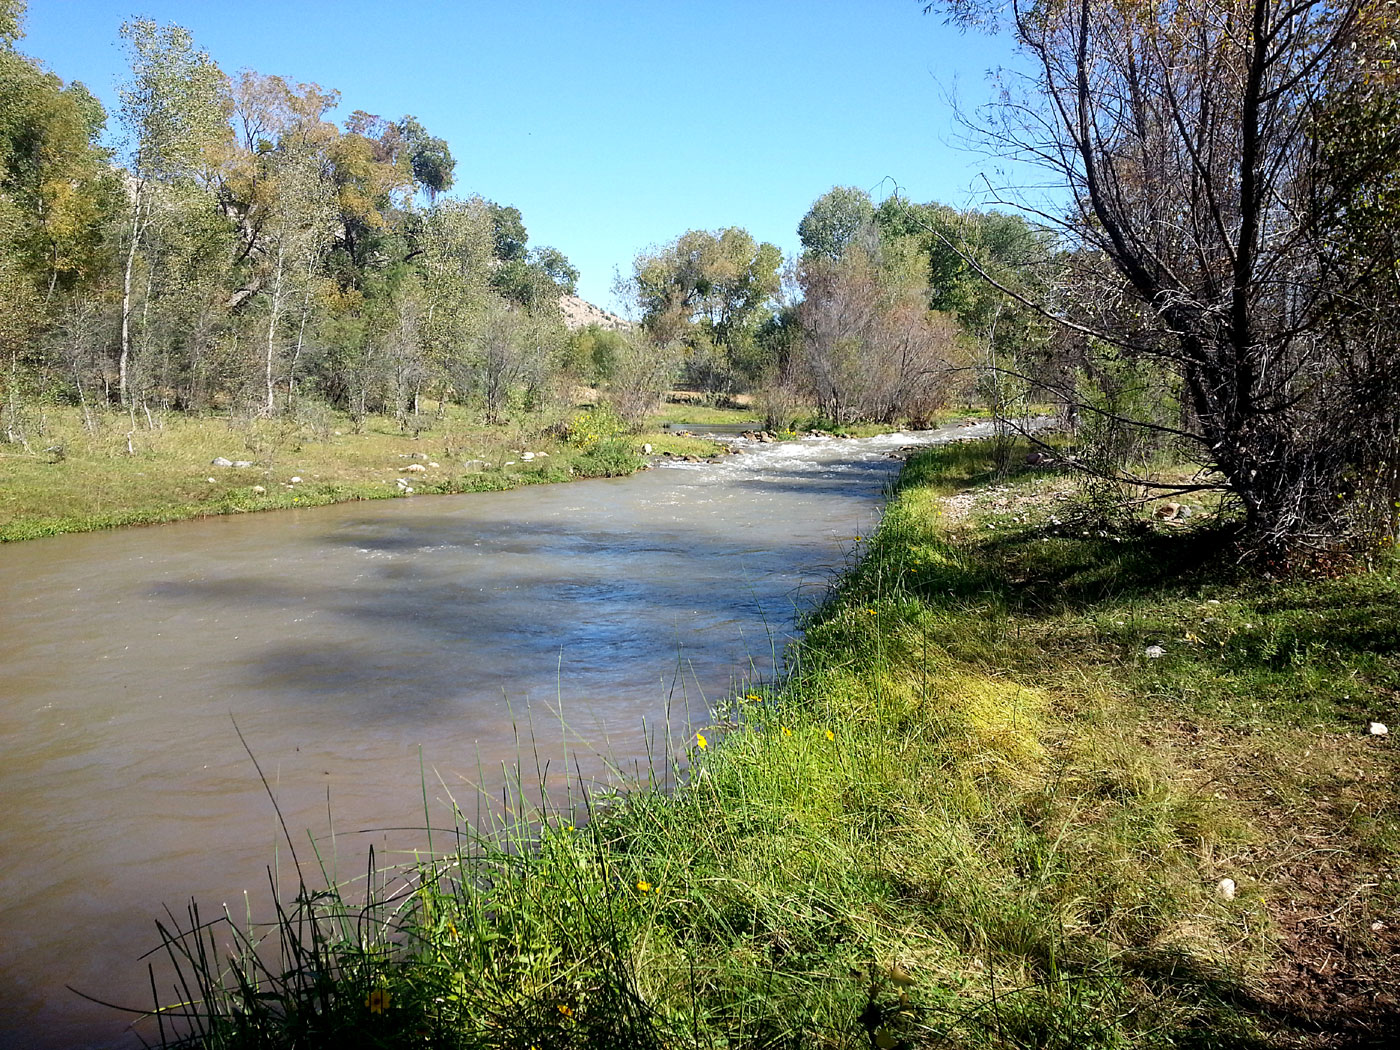 The Verde River